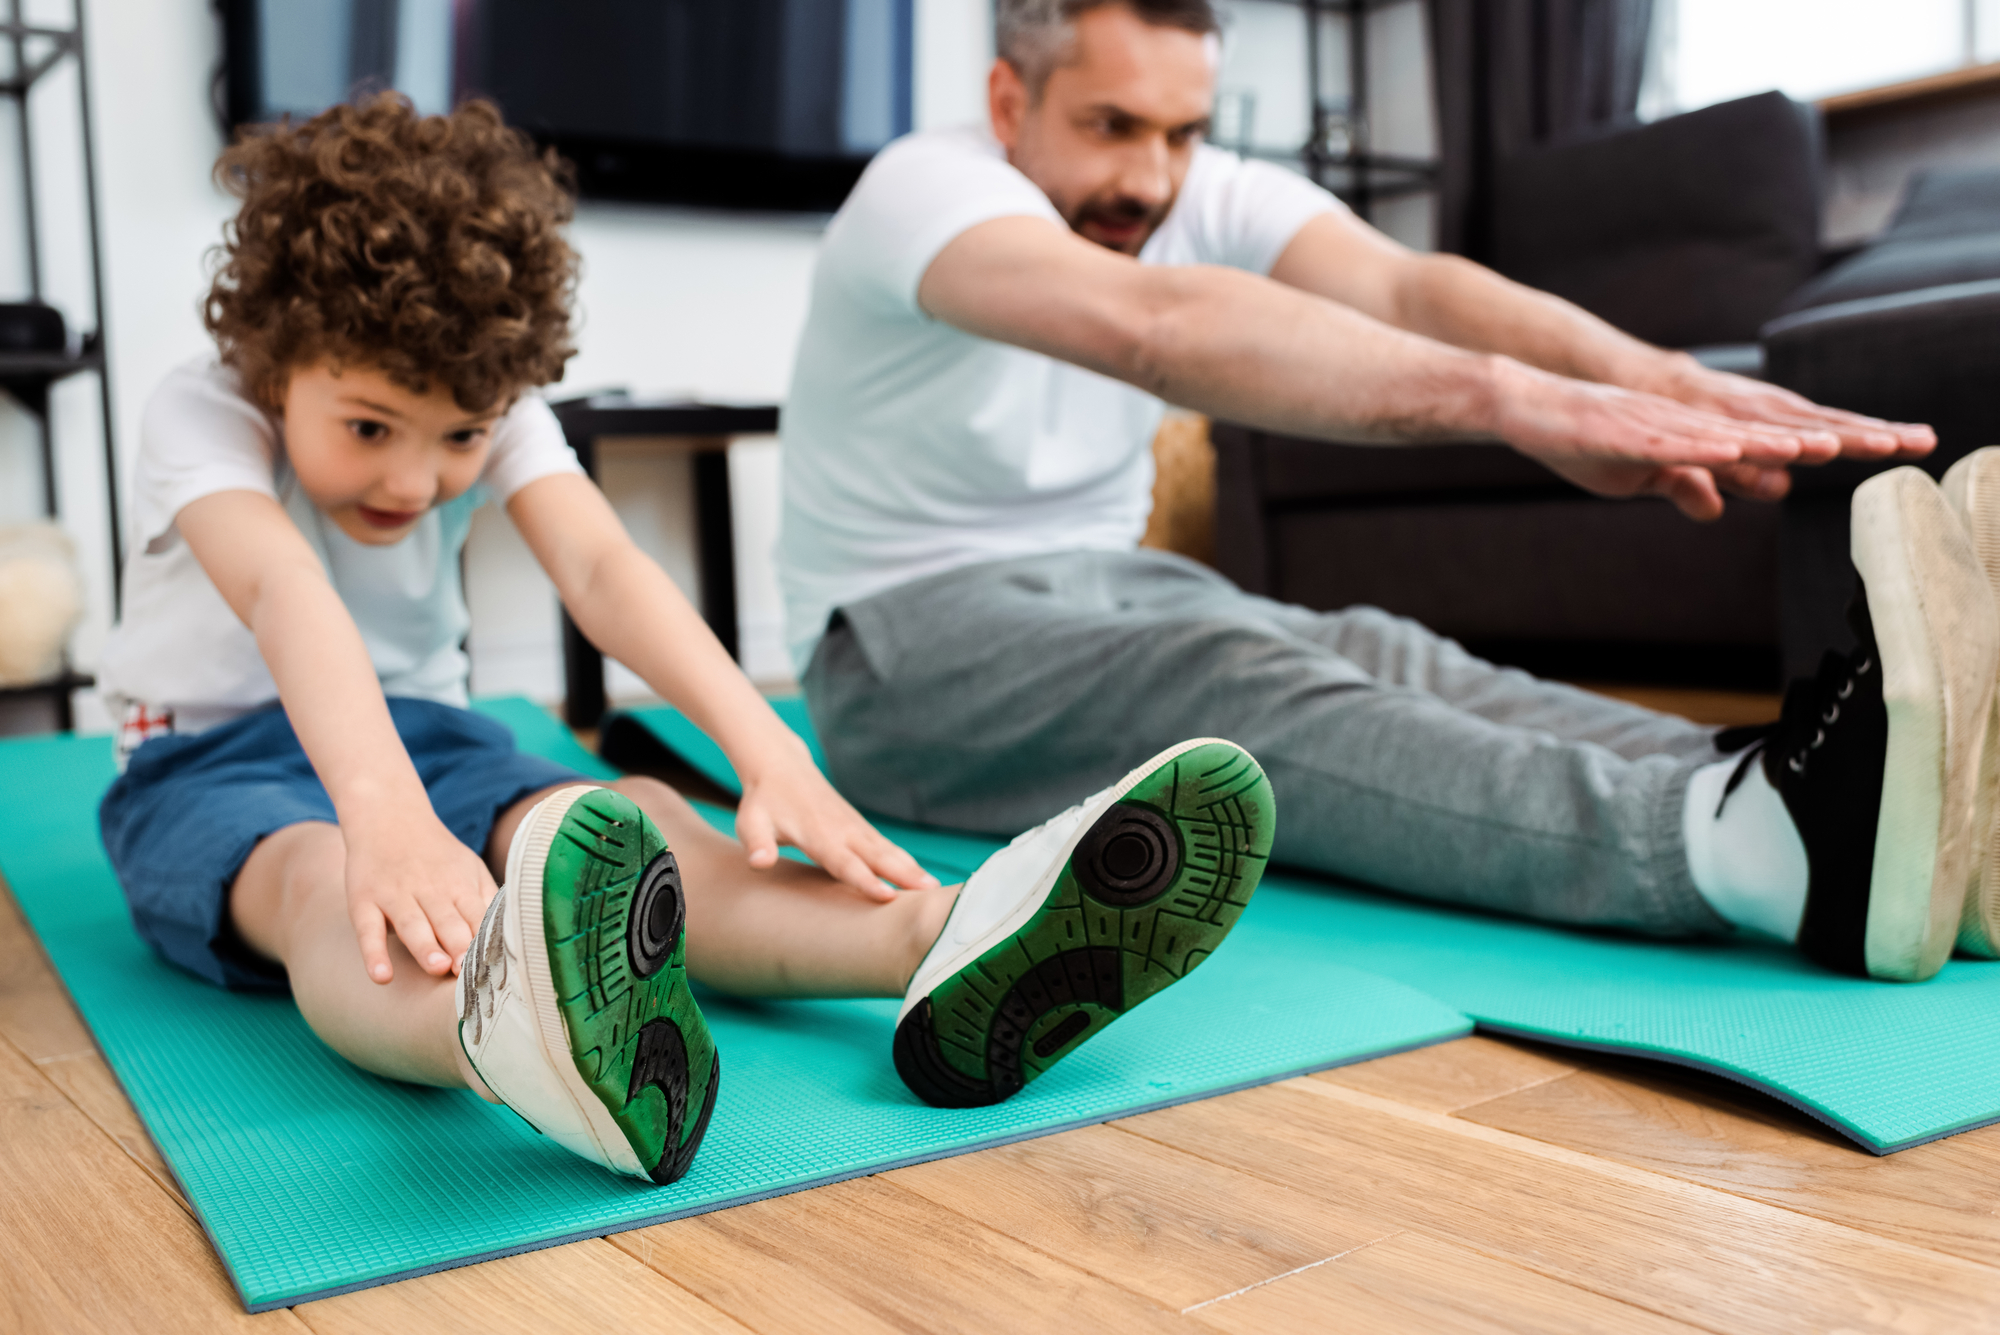 A new study has shone new light on the importance of healthy eating and physical activity during childhood